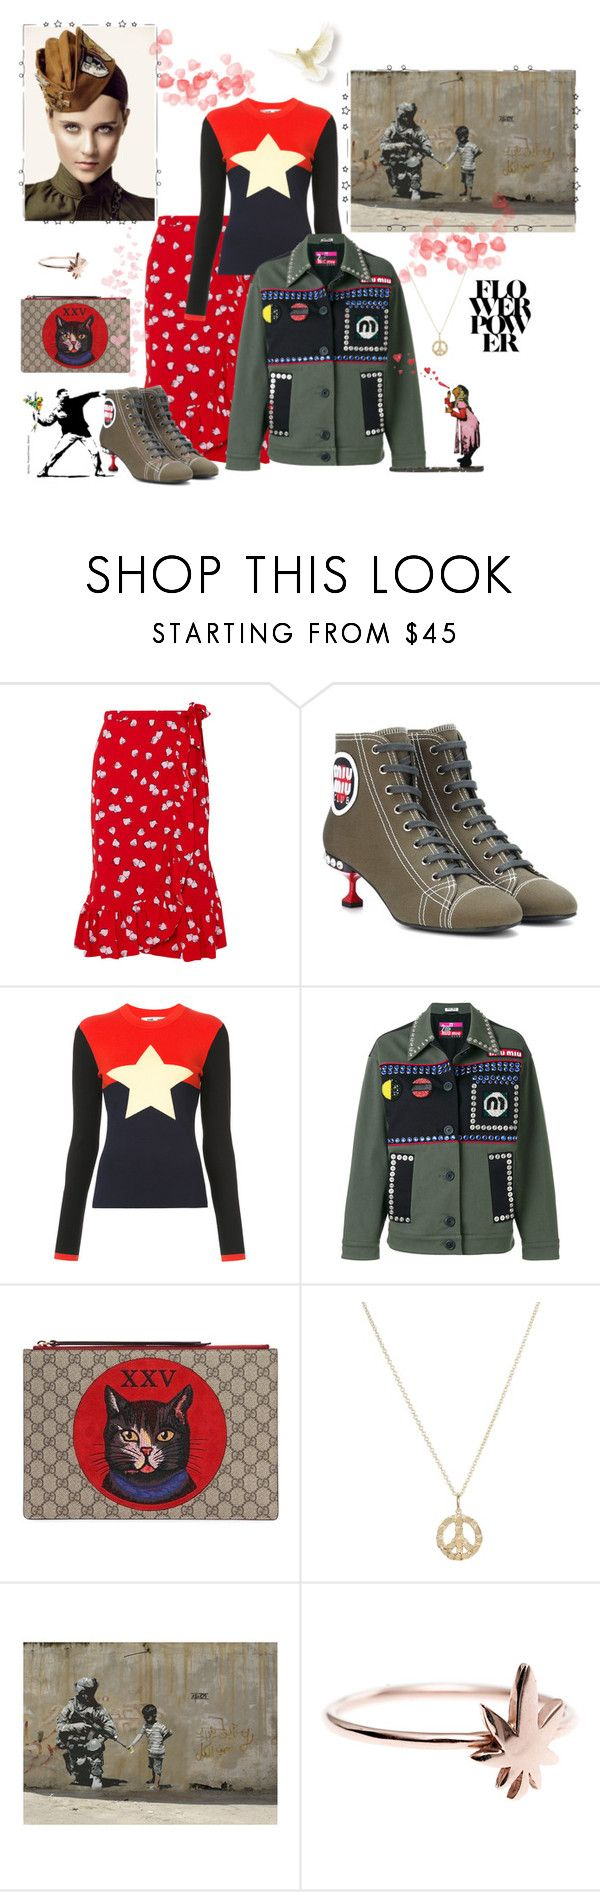 """Sergeant Flower Bomb"" by juliabachmann ❤ liked on Polyvore featuring Miu Miu, Diane Von Furstenberg and Gucci"